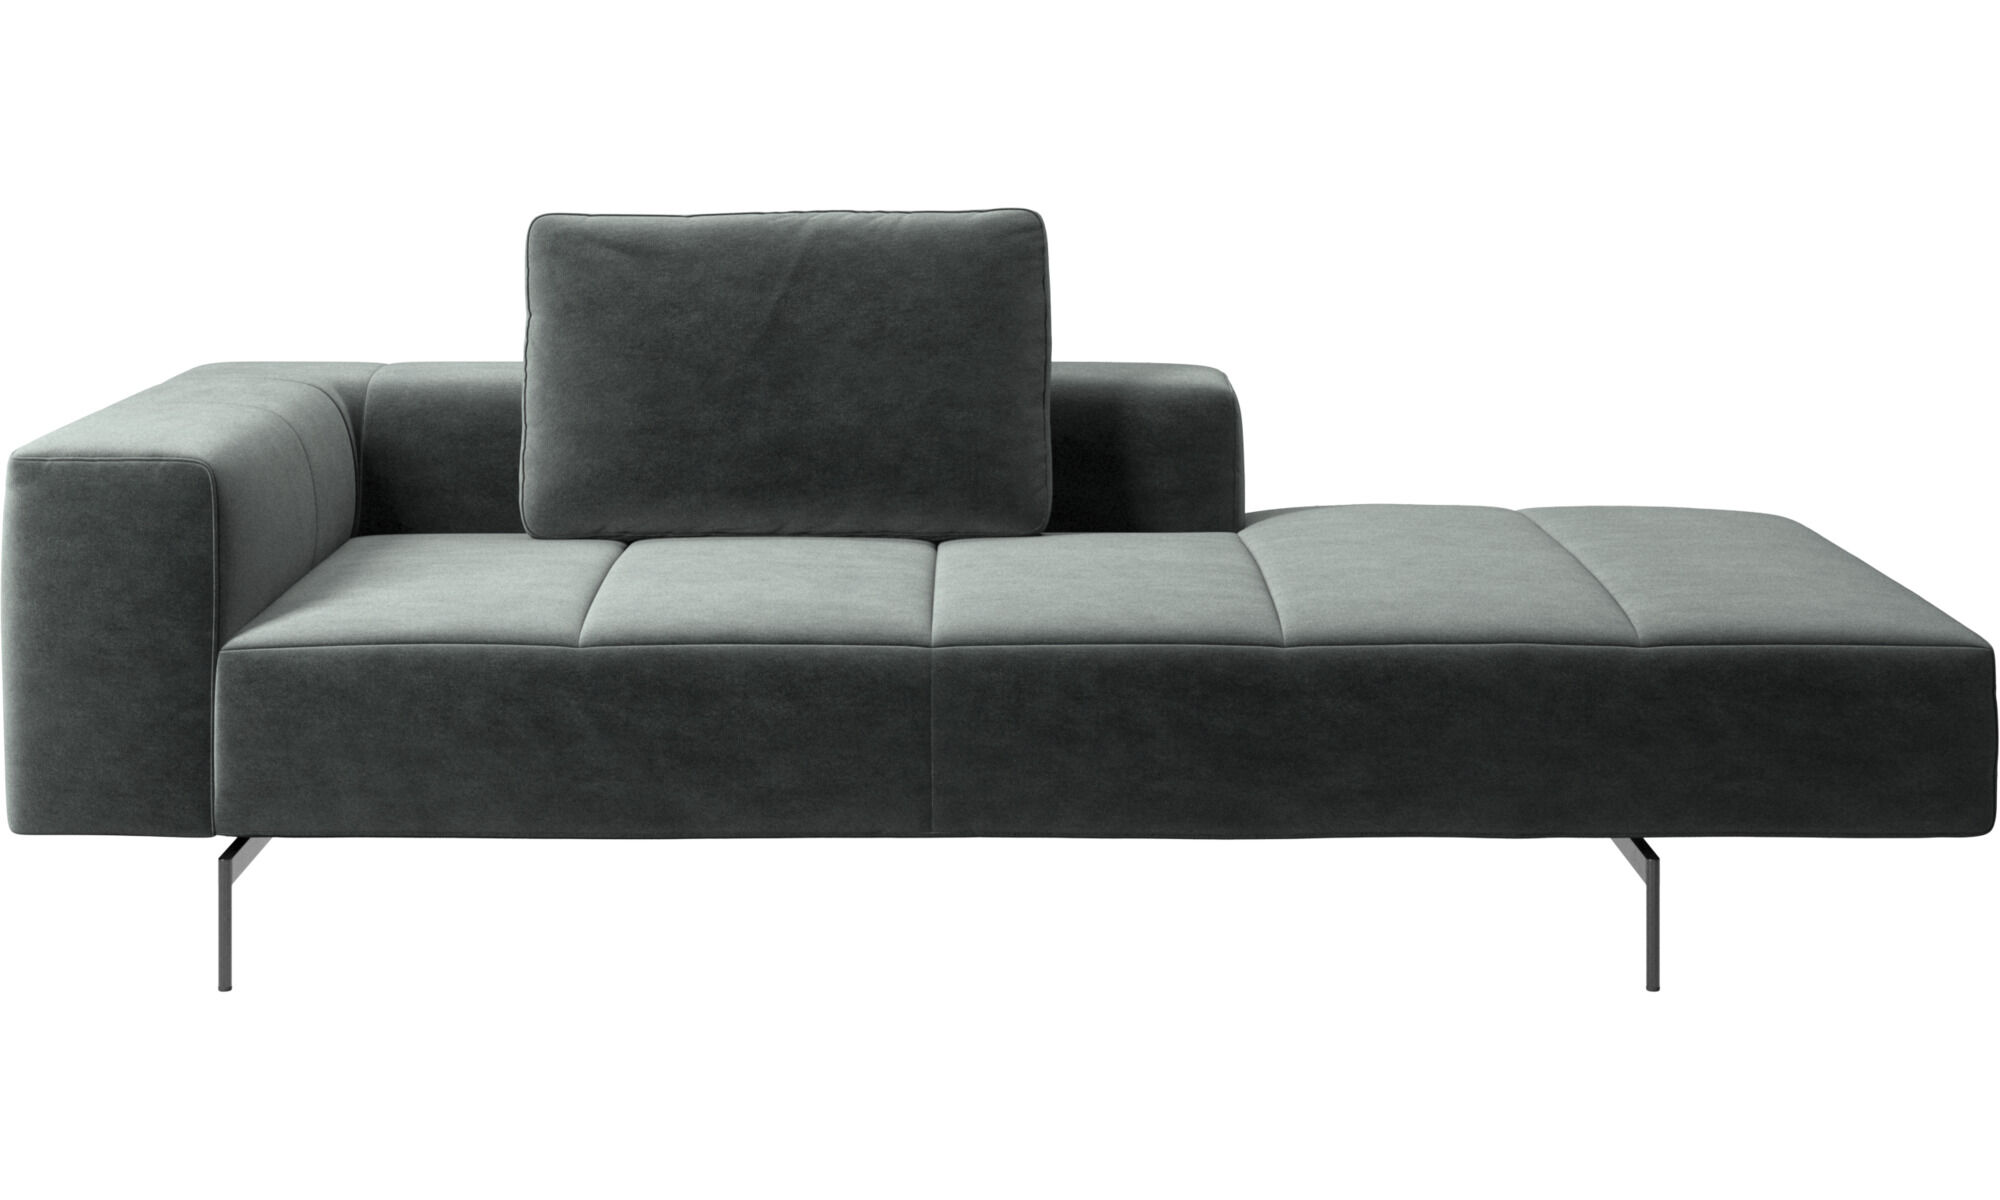 Merveilleux Chaise Lounge Sofas   Amsterdam Lounging Module For Sofa, Medium Armrest  Right   Green